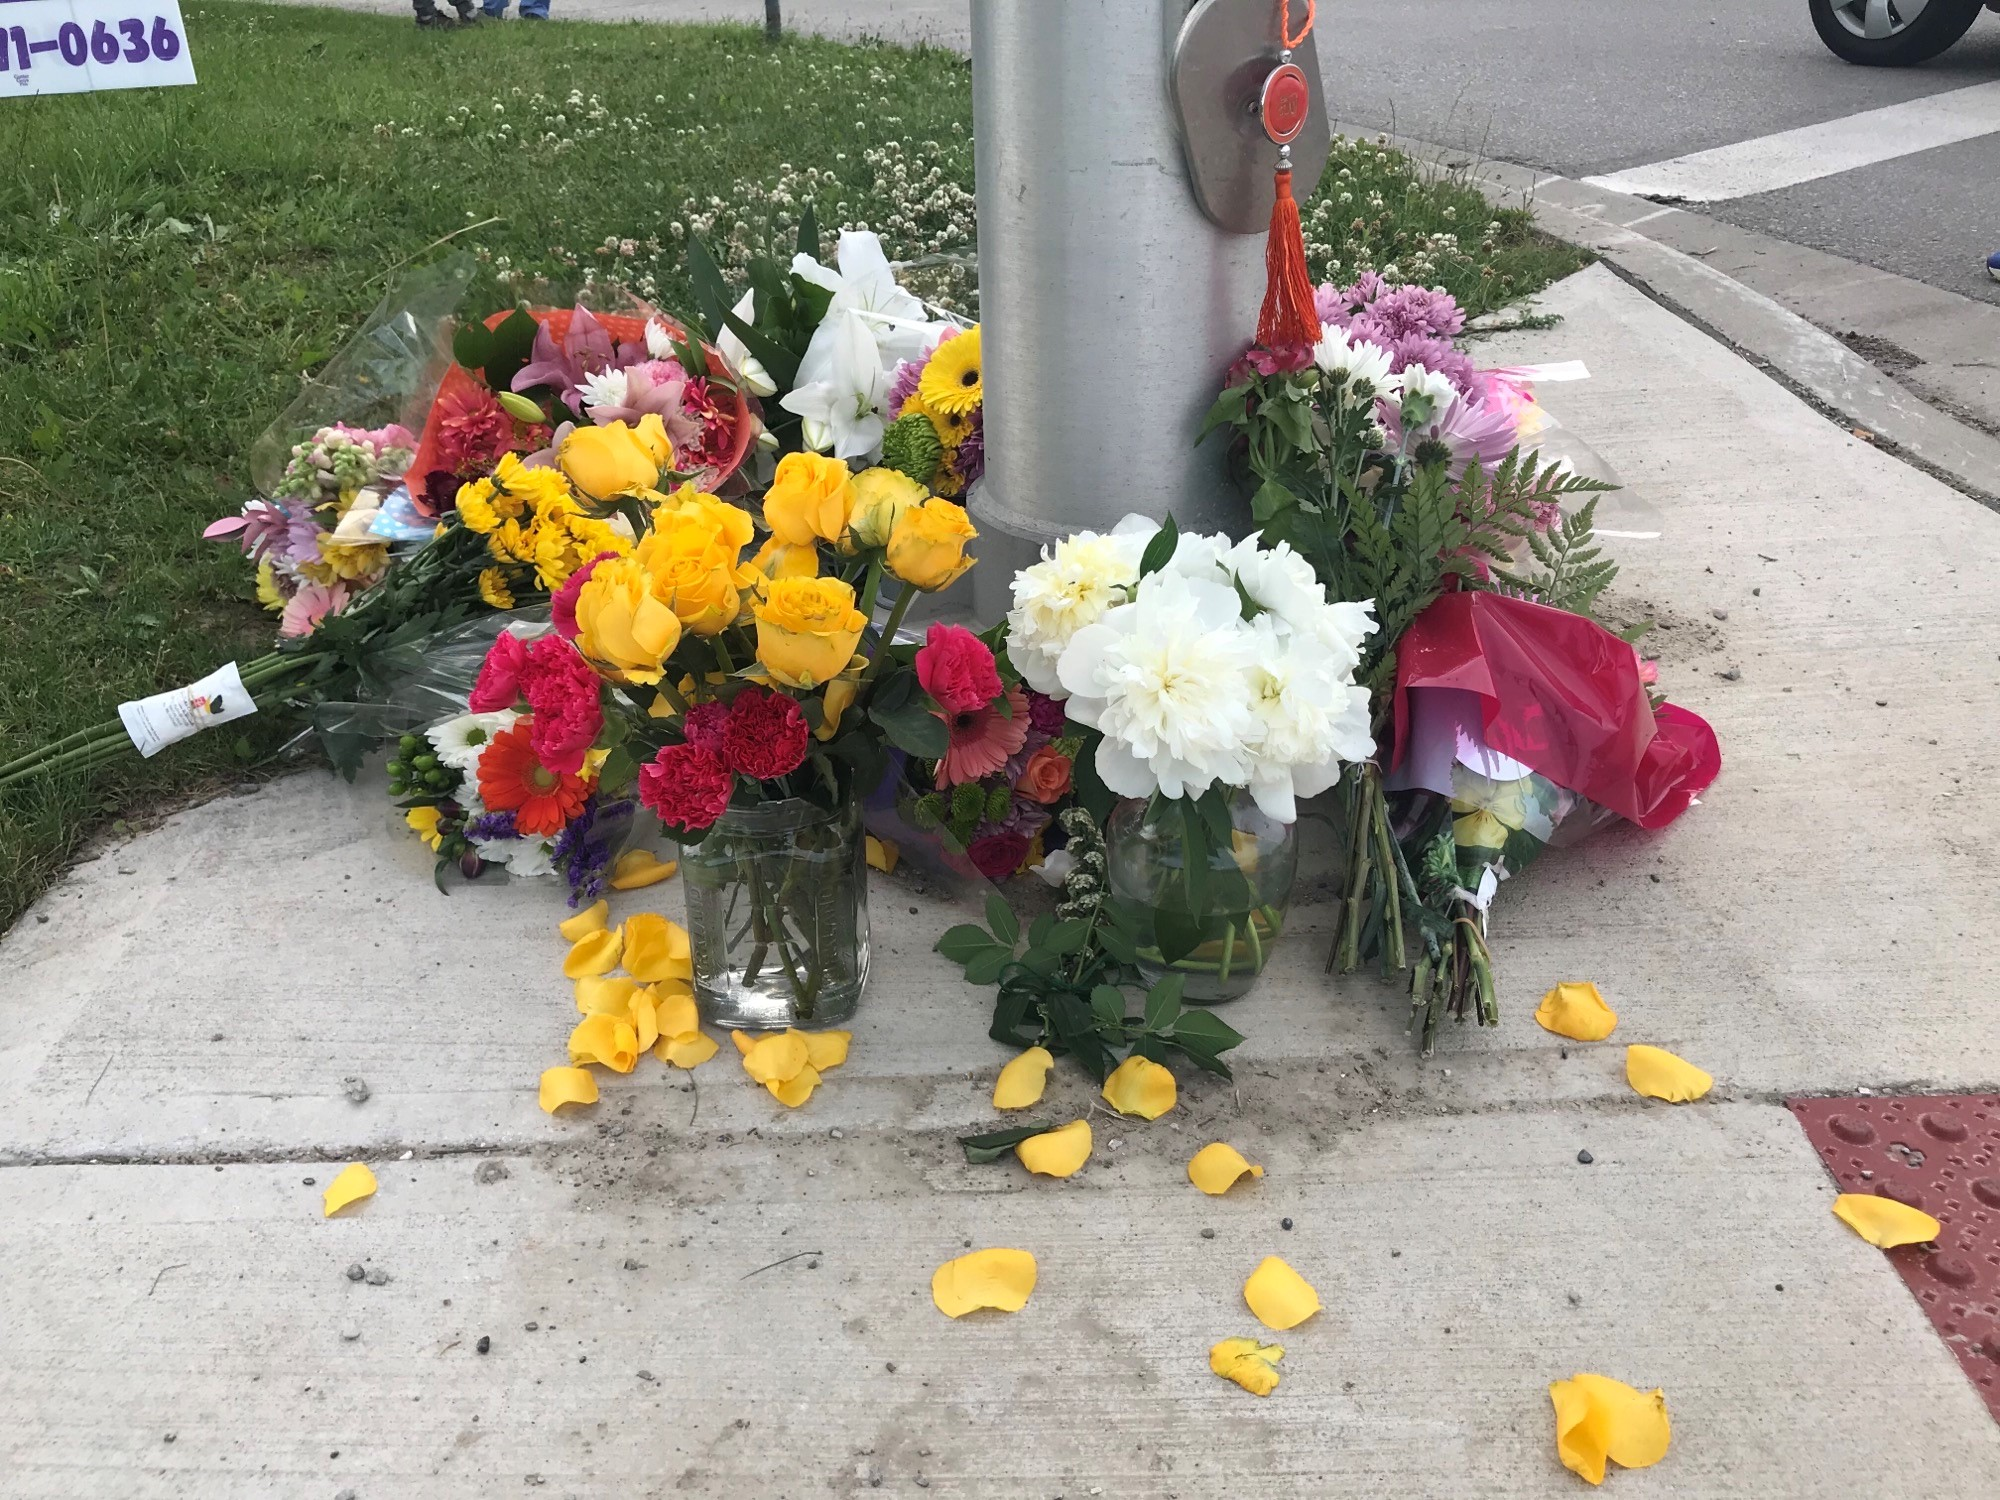 A small, makeshift memorial of flowers is pictured on June 7, 2021, on the London, Ontario sidewalk where a Muslim family of five was rundown by a vehicle in an attack police say was hate-motivated.